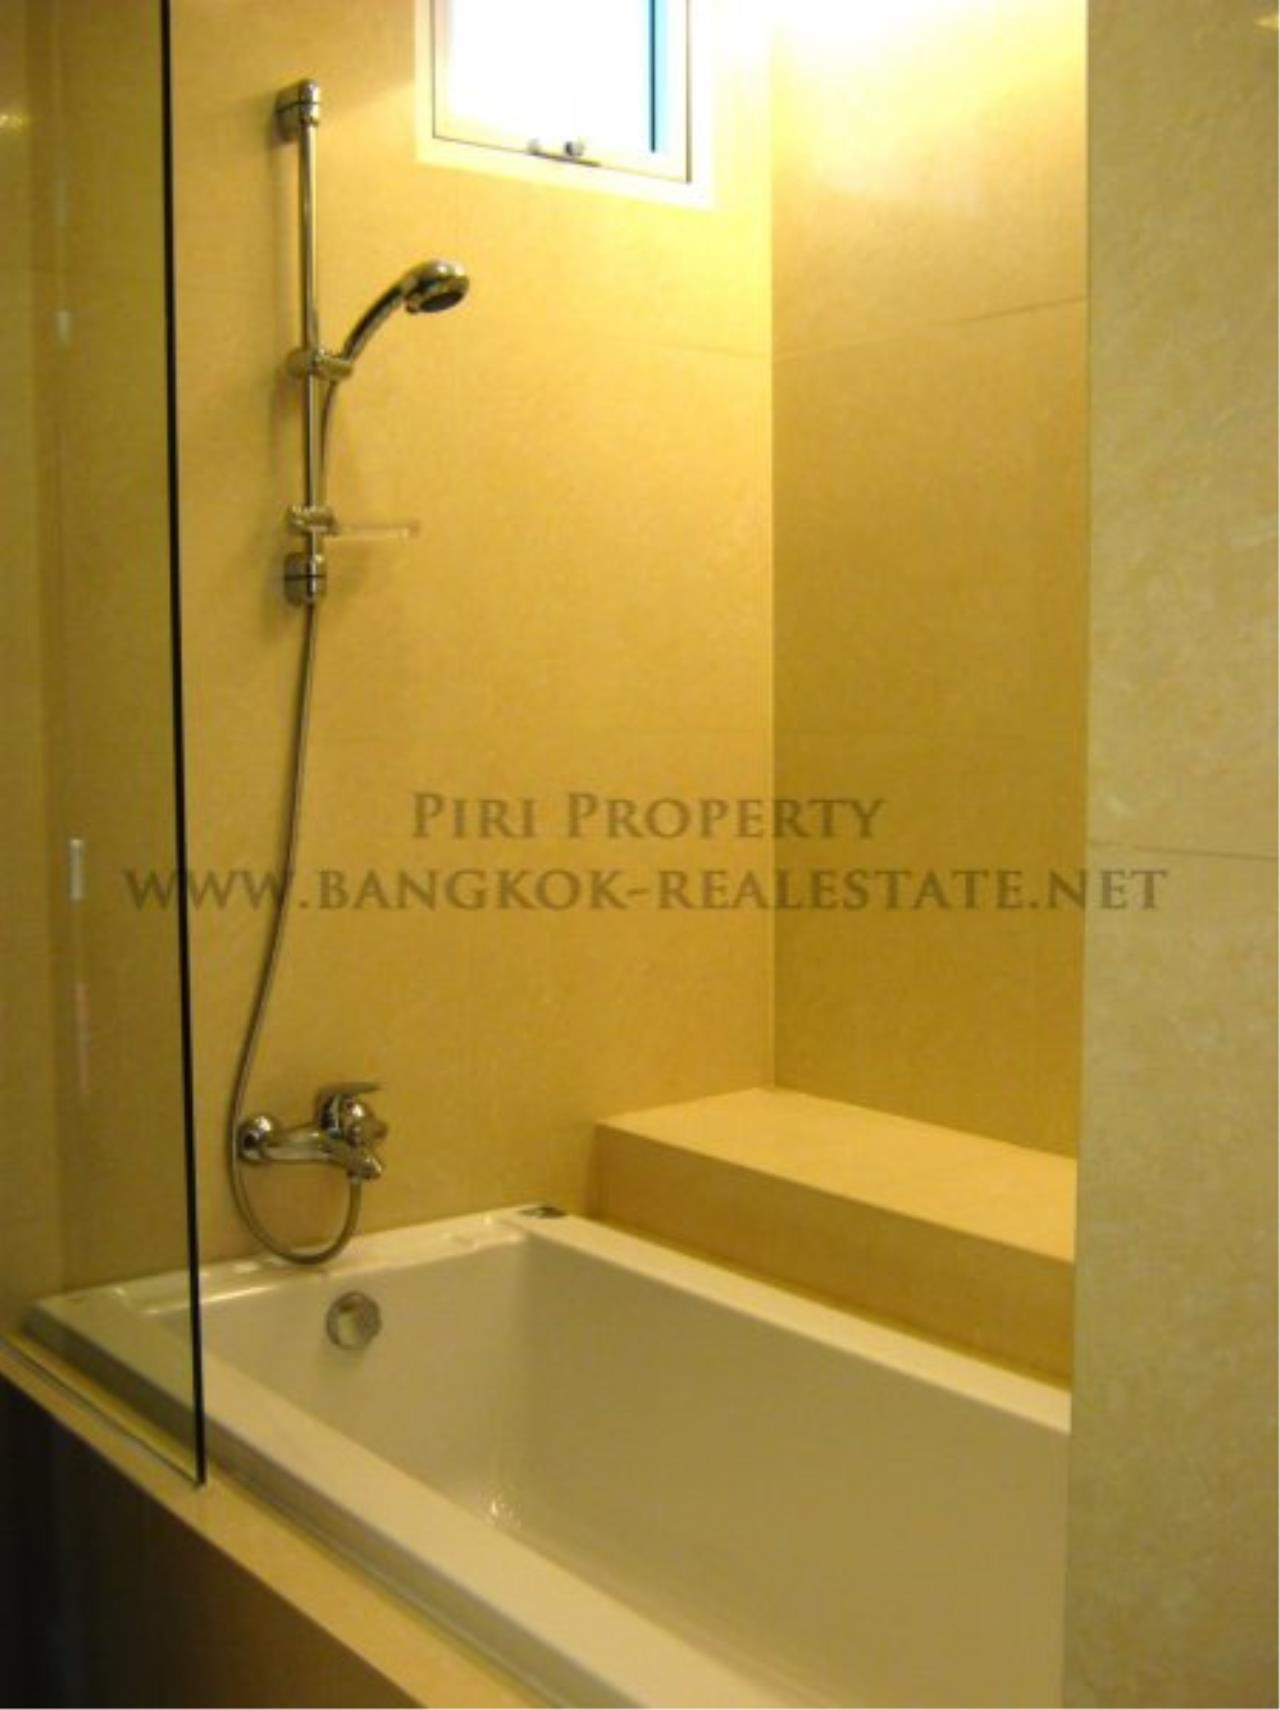 Piri Property Agency's Spacious 3 Bedroom near Asoke on Sukhumvit Soi 20 - 200 SQM 12